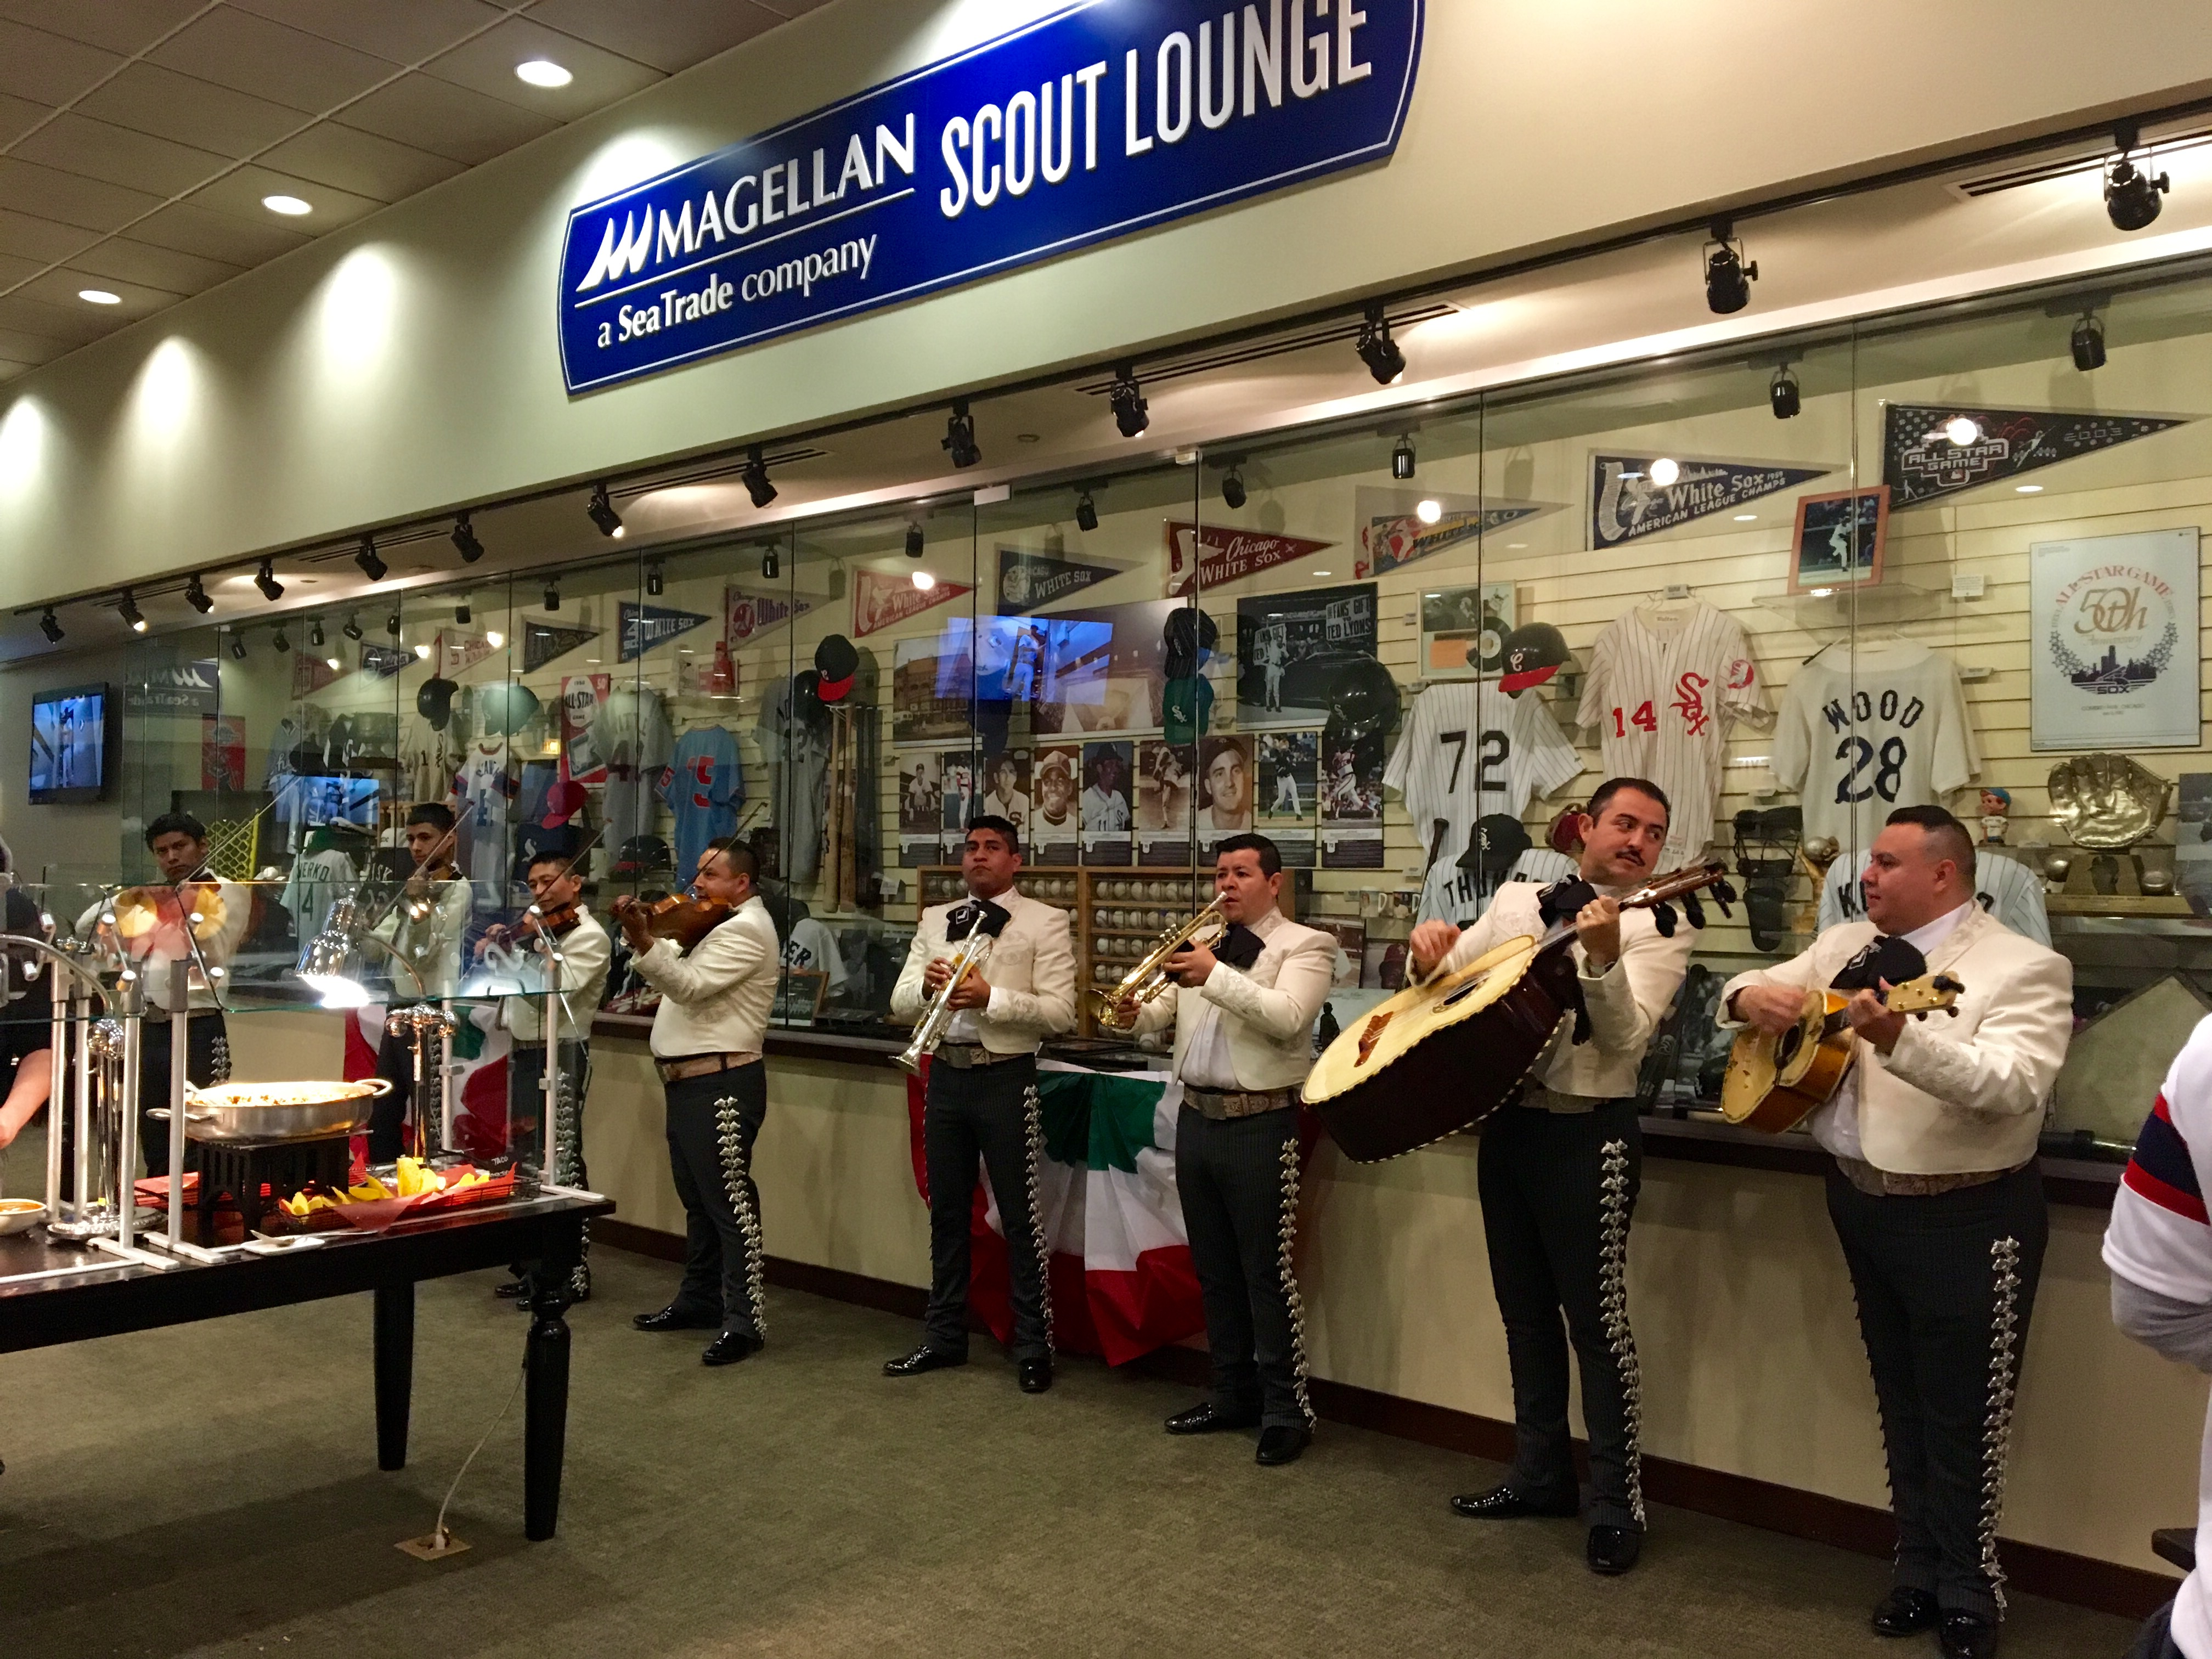 Mariachis spotted in the Magellan Scout Lounge on Cinco de Mayo.